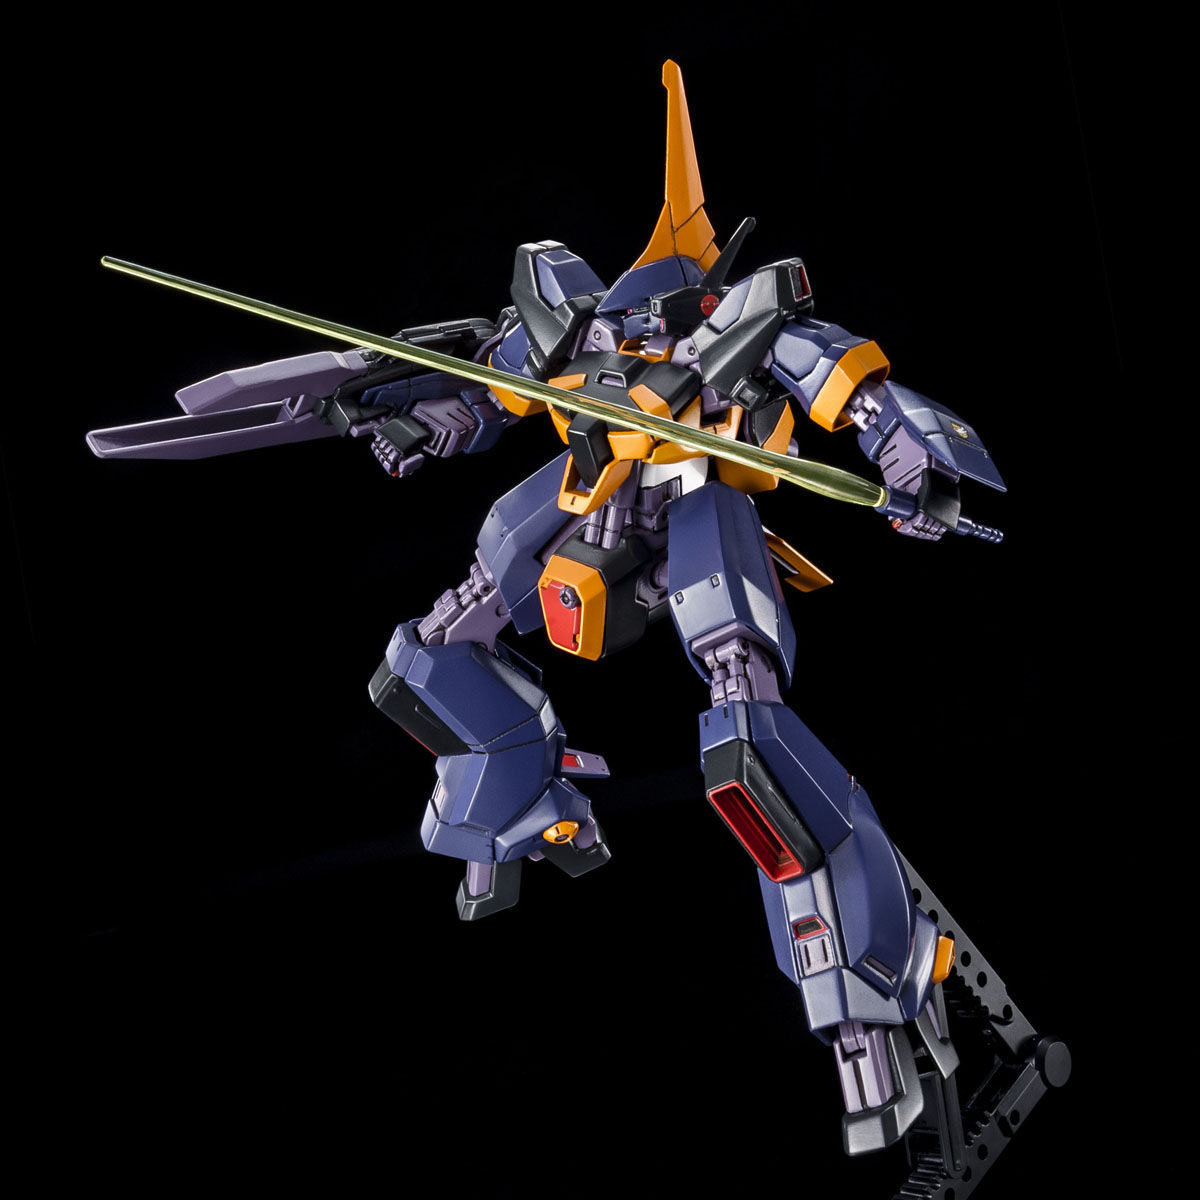 HG 1/144 BARZAM(A.O.Z RE-BOOT Ver.) [Aug 2021 Delivery]